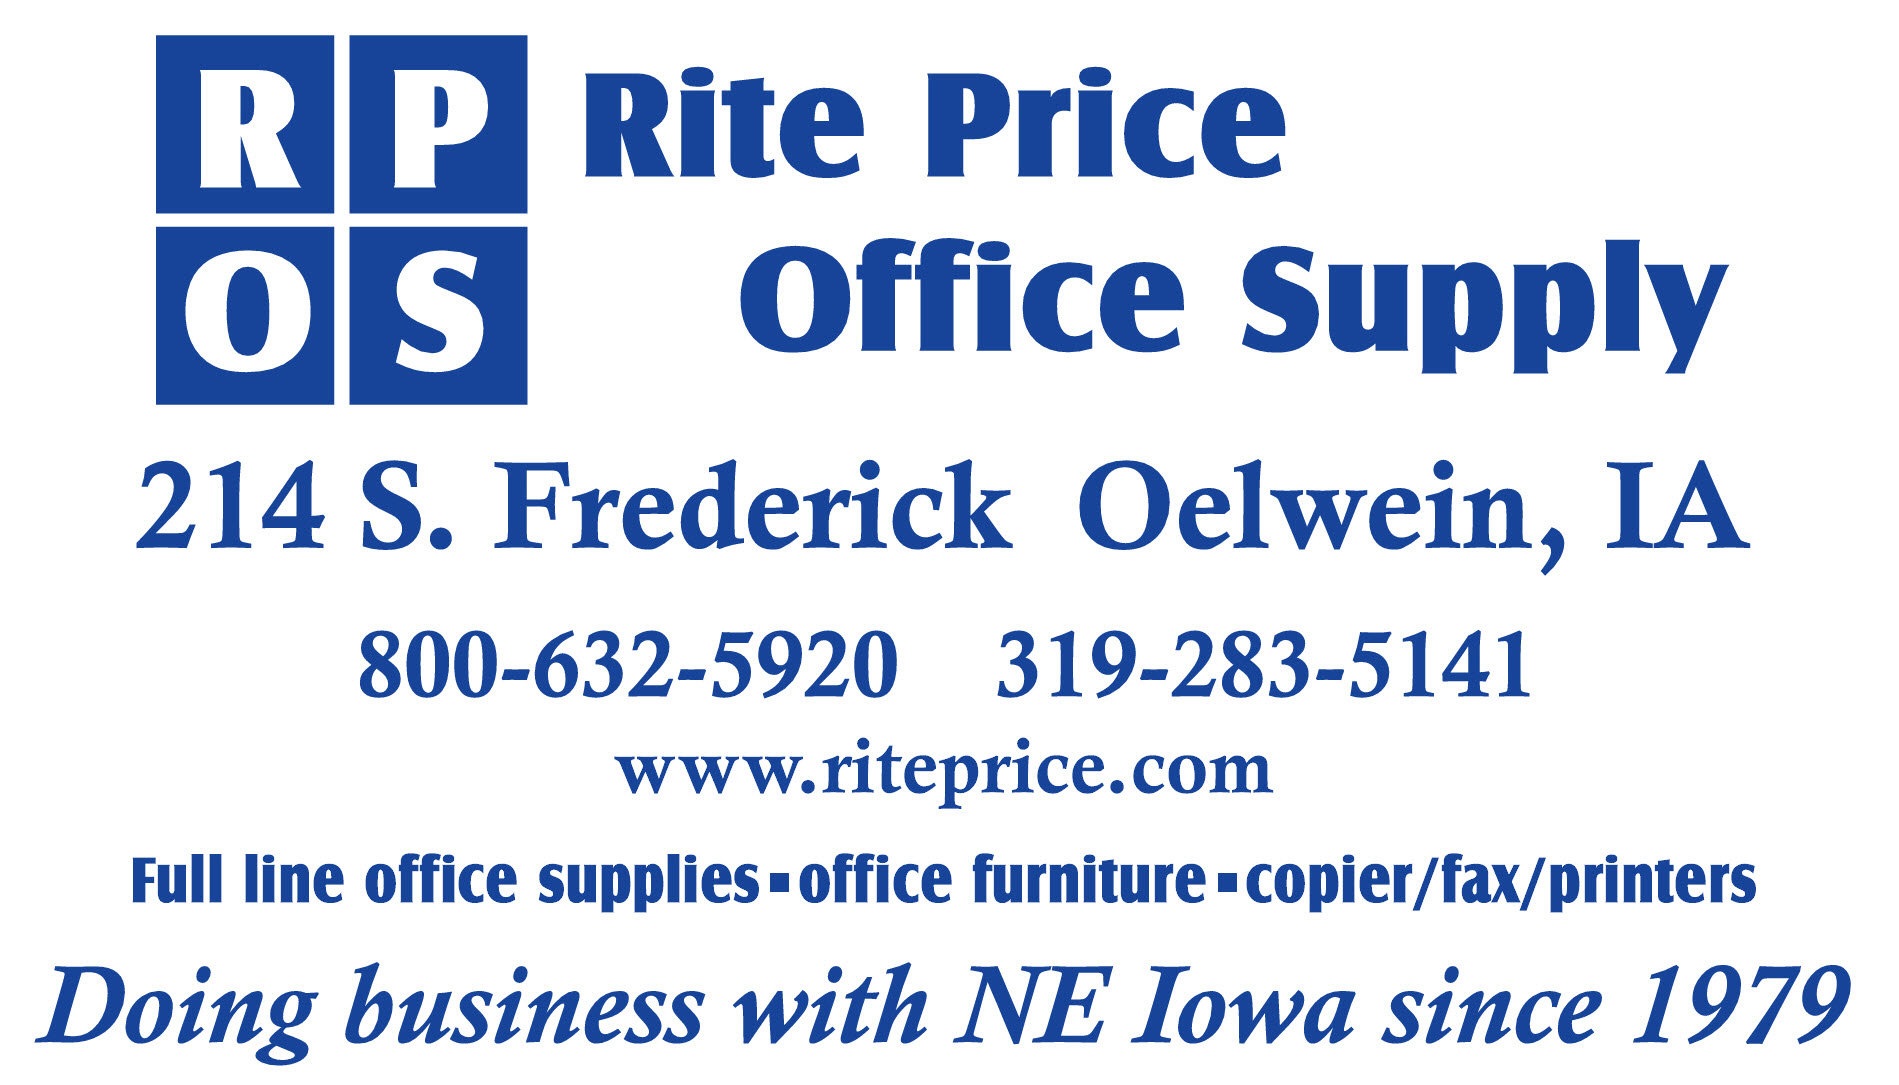 WEL E TO RITE PRICE OFFICE SUPPLY